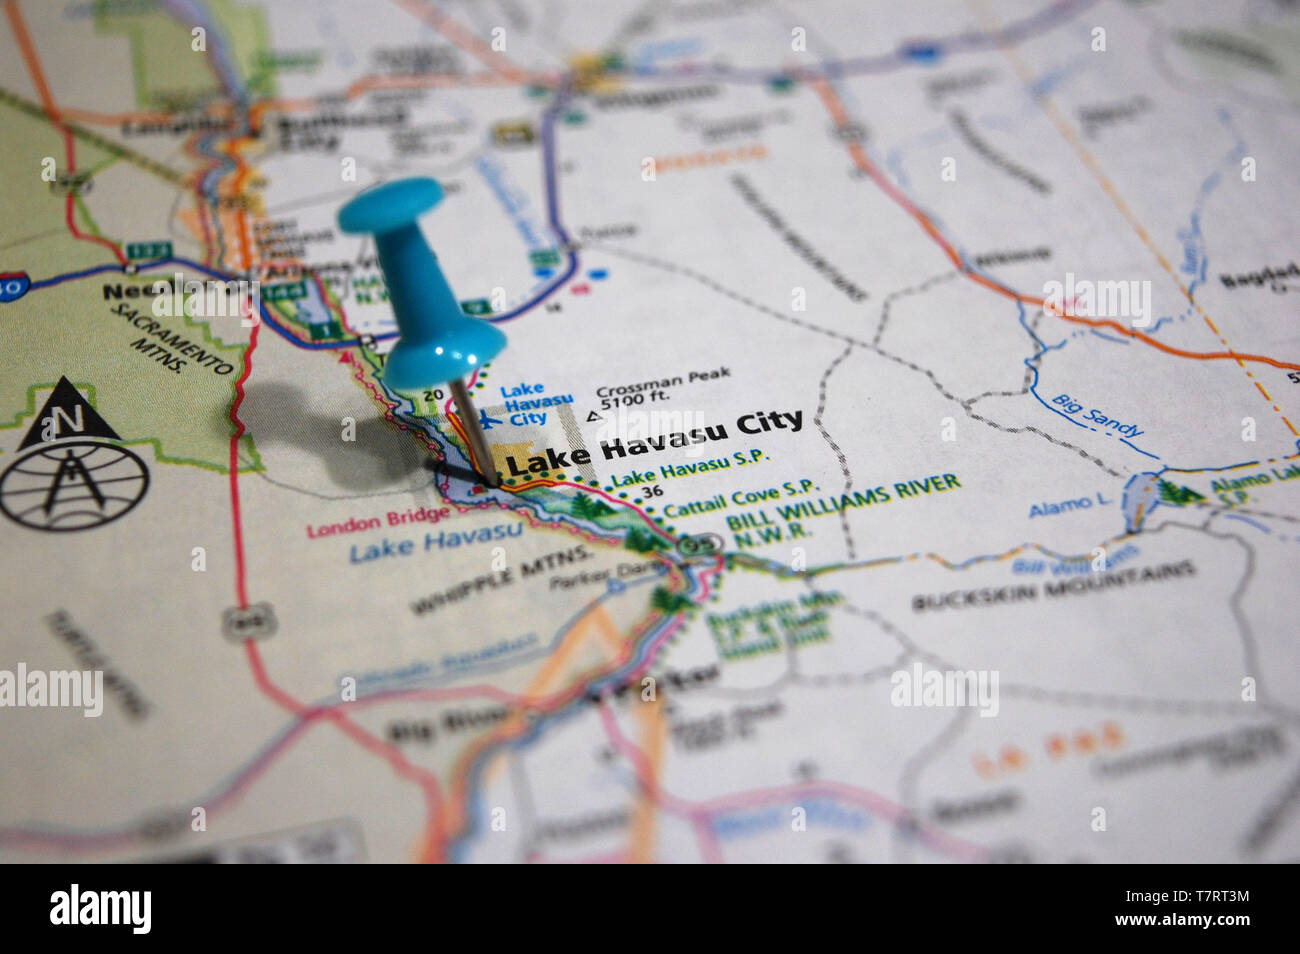 A map of Lake Havasu City, Arizona marked with a push pin ... Map Lake Havasu on bass lake map, city of lake elsinore map, canyon lake map, havasu city map, havasupai falls map, havasu springs map, coachella valley map, lake gogebic map nearest city, lake tahoe city map, riggs flat lake map, havasu falls map, san francisco bay map, arizona map, laughlin map, yuma map, costa mesa map, lake park map, colorado river map, sacramento map, phoenix map,